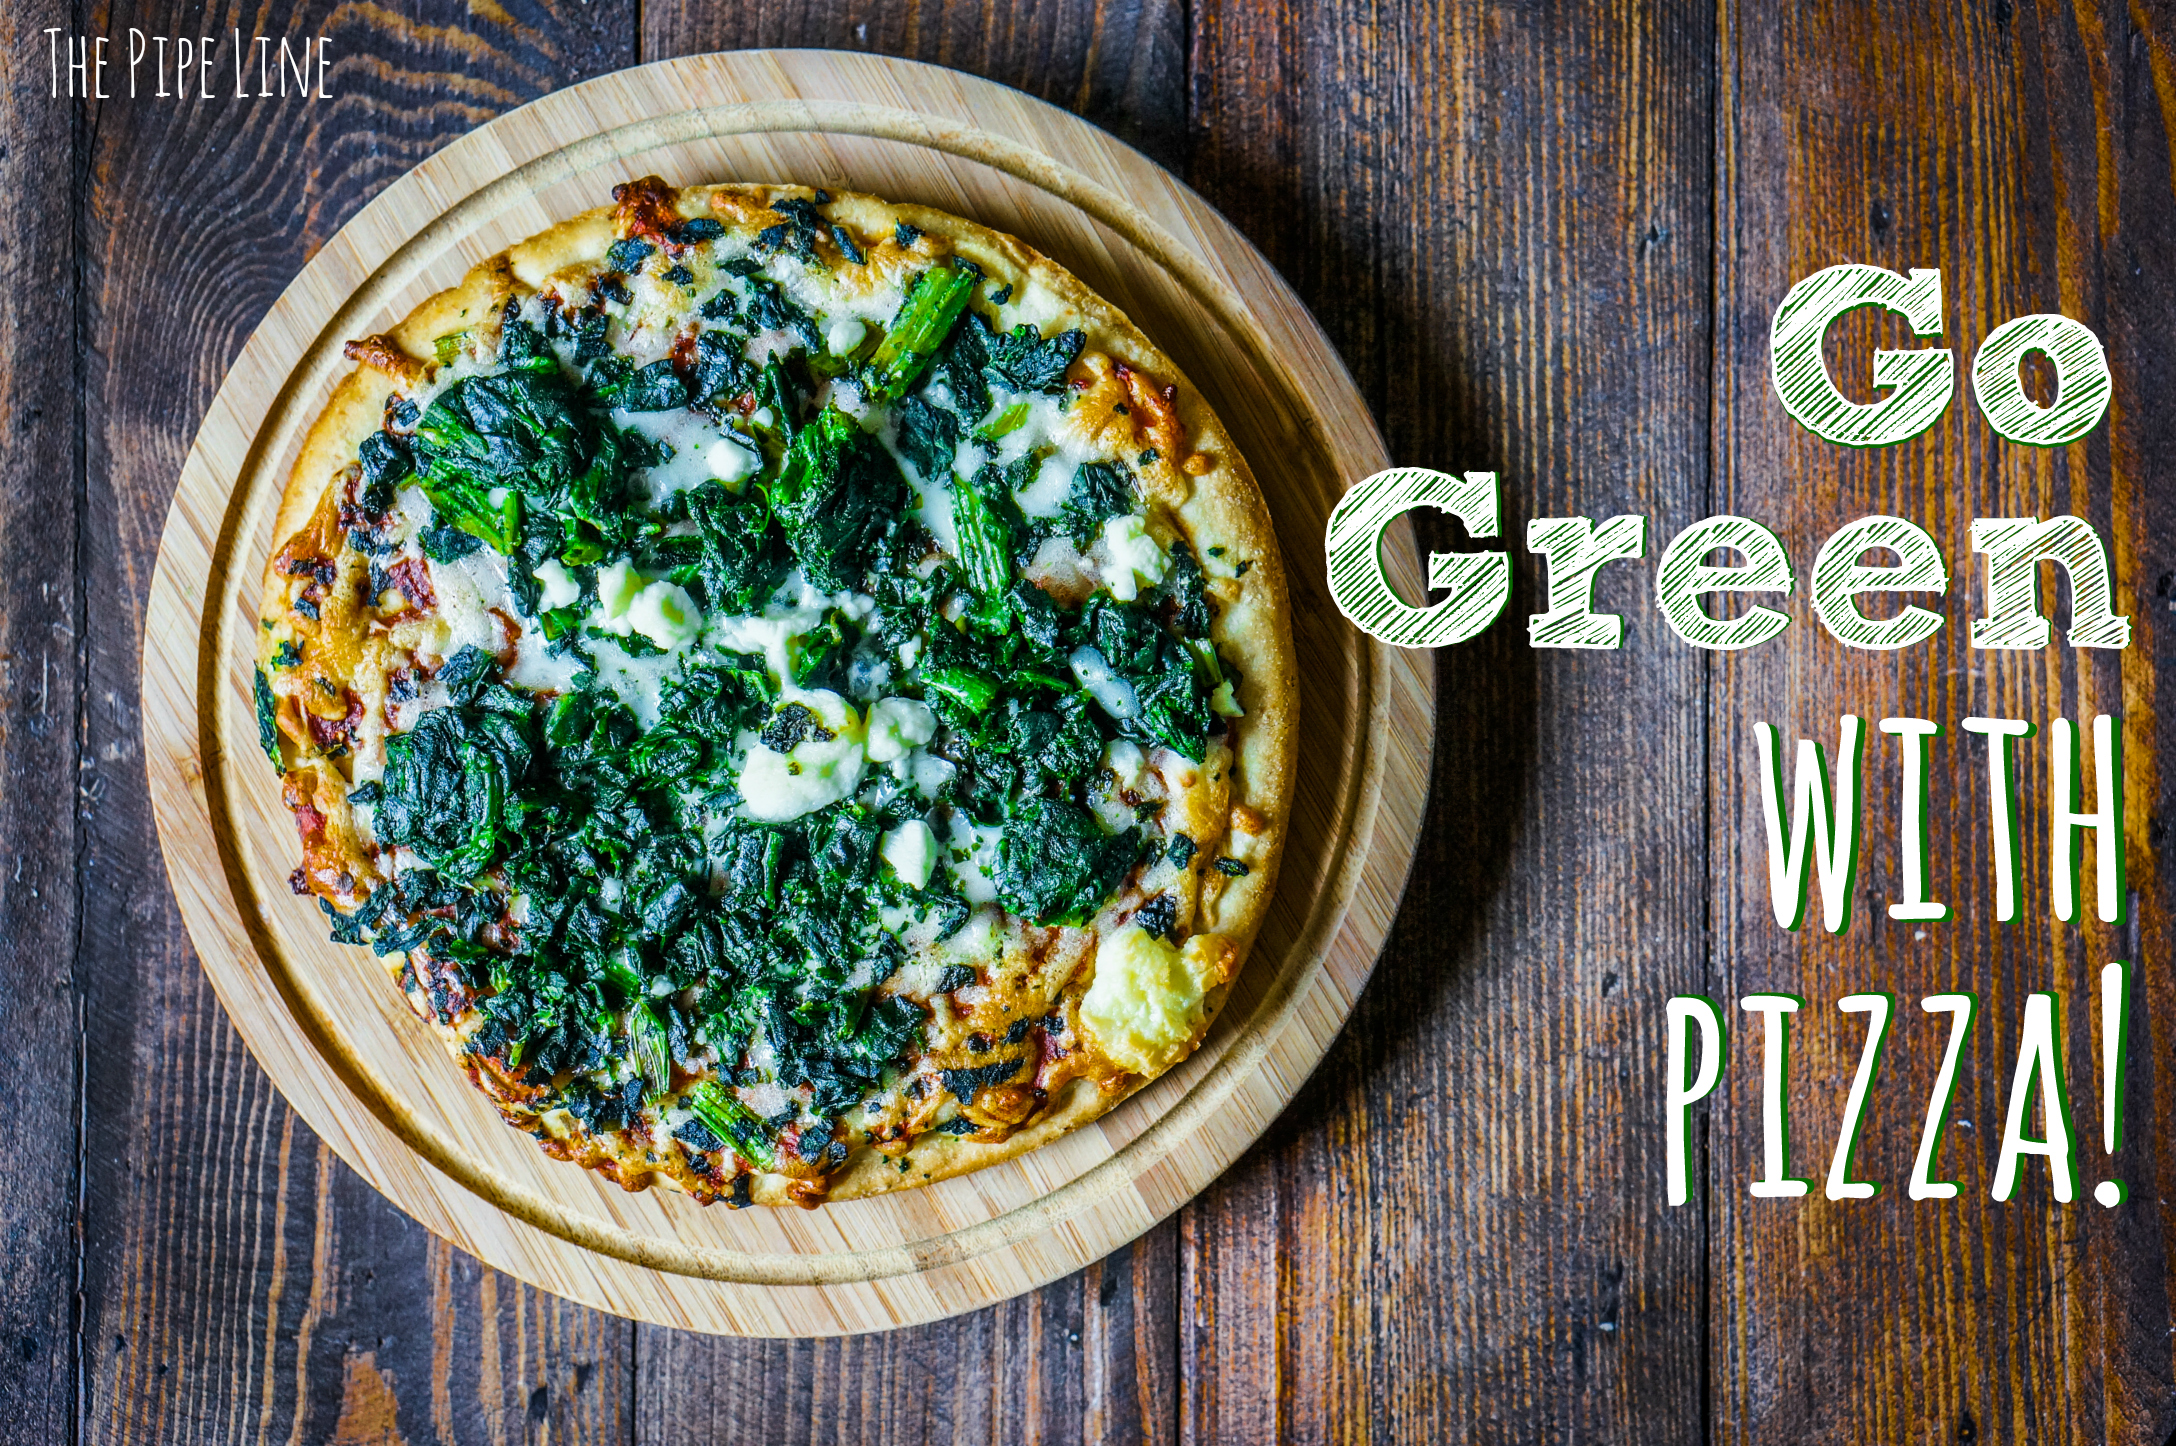 Piping Rock - The Pipe Line - Go Green With Your Pizza